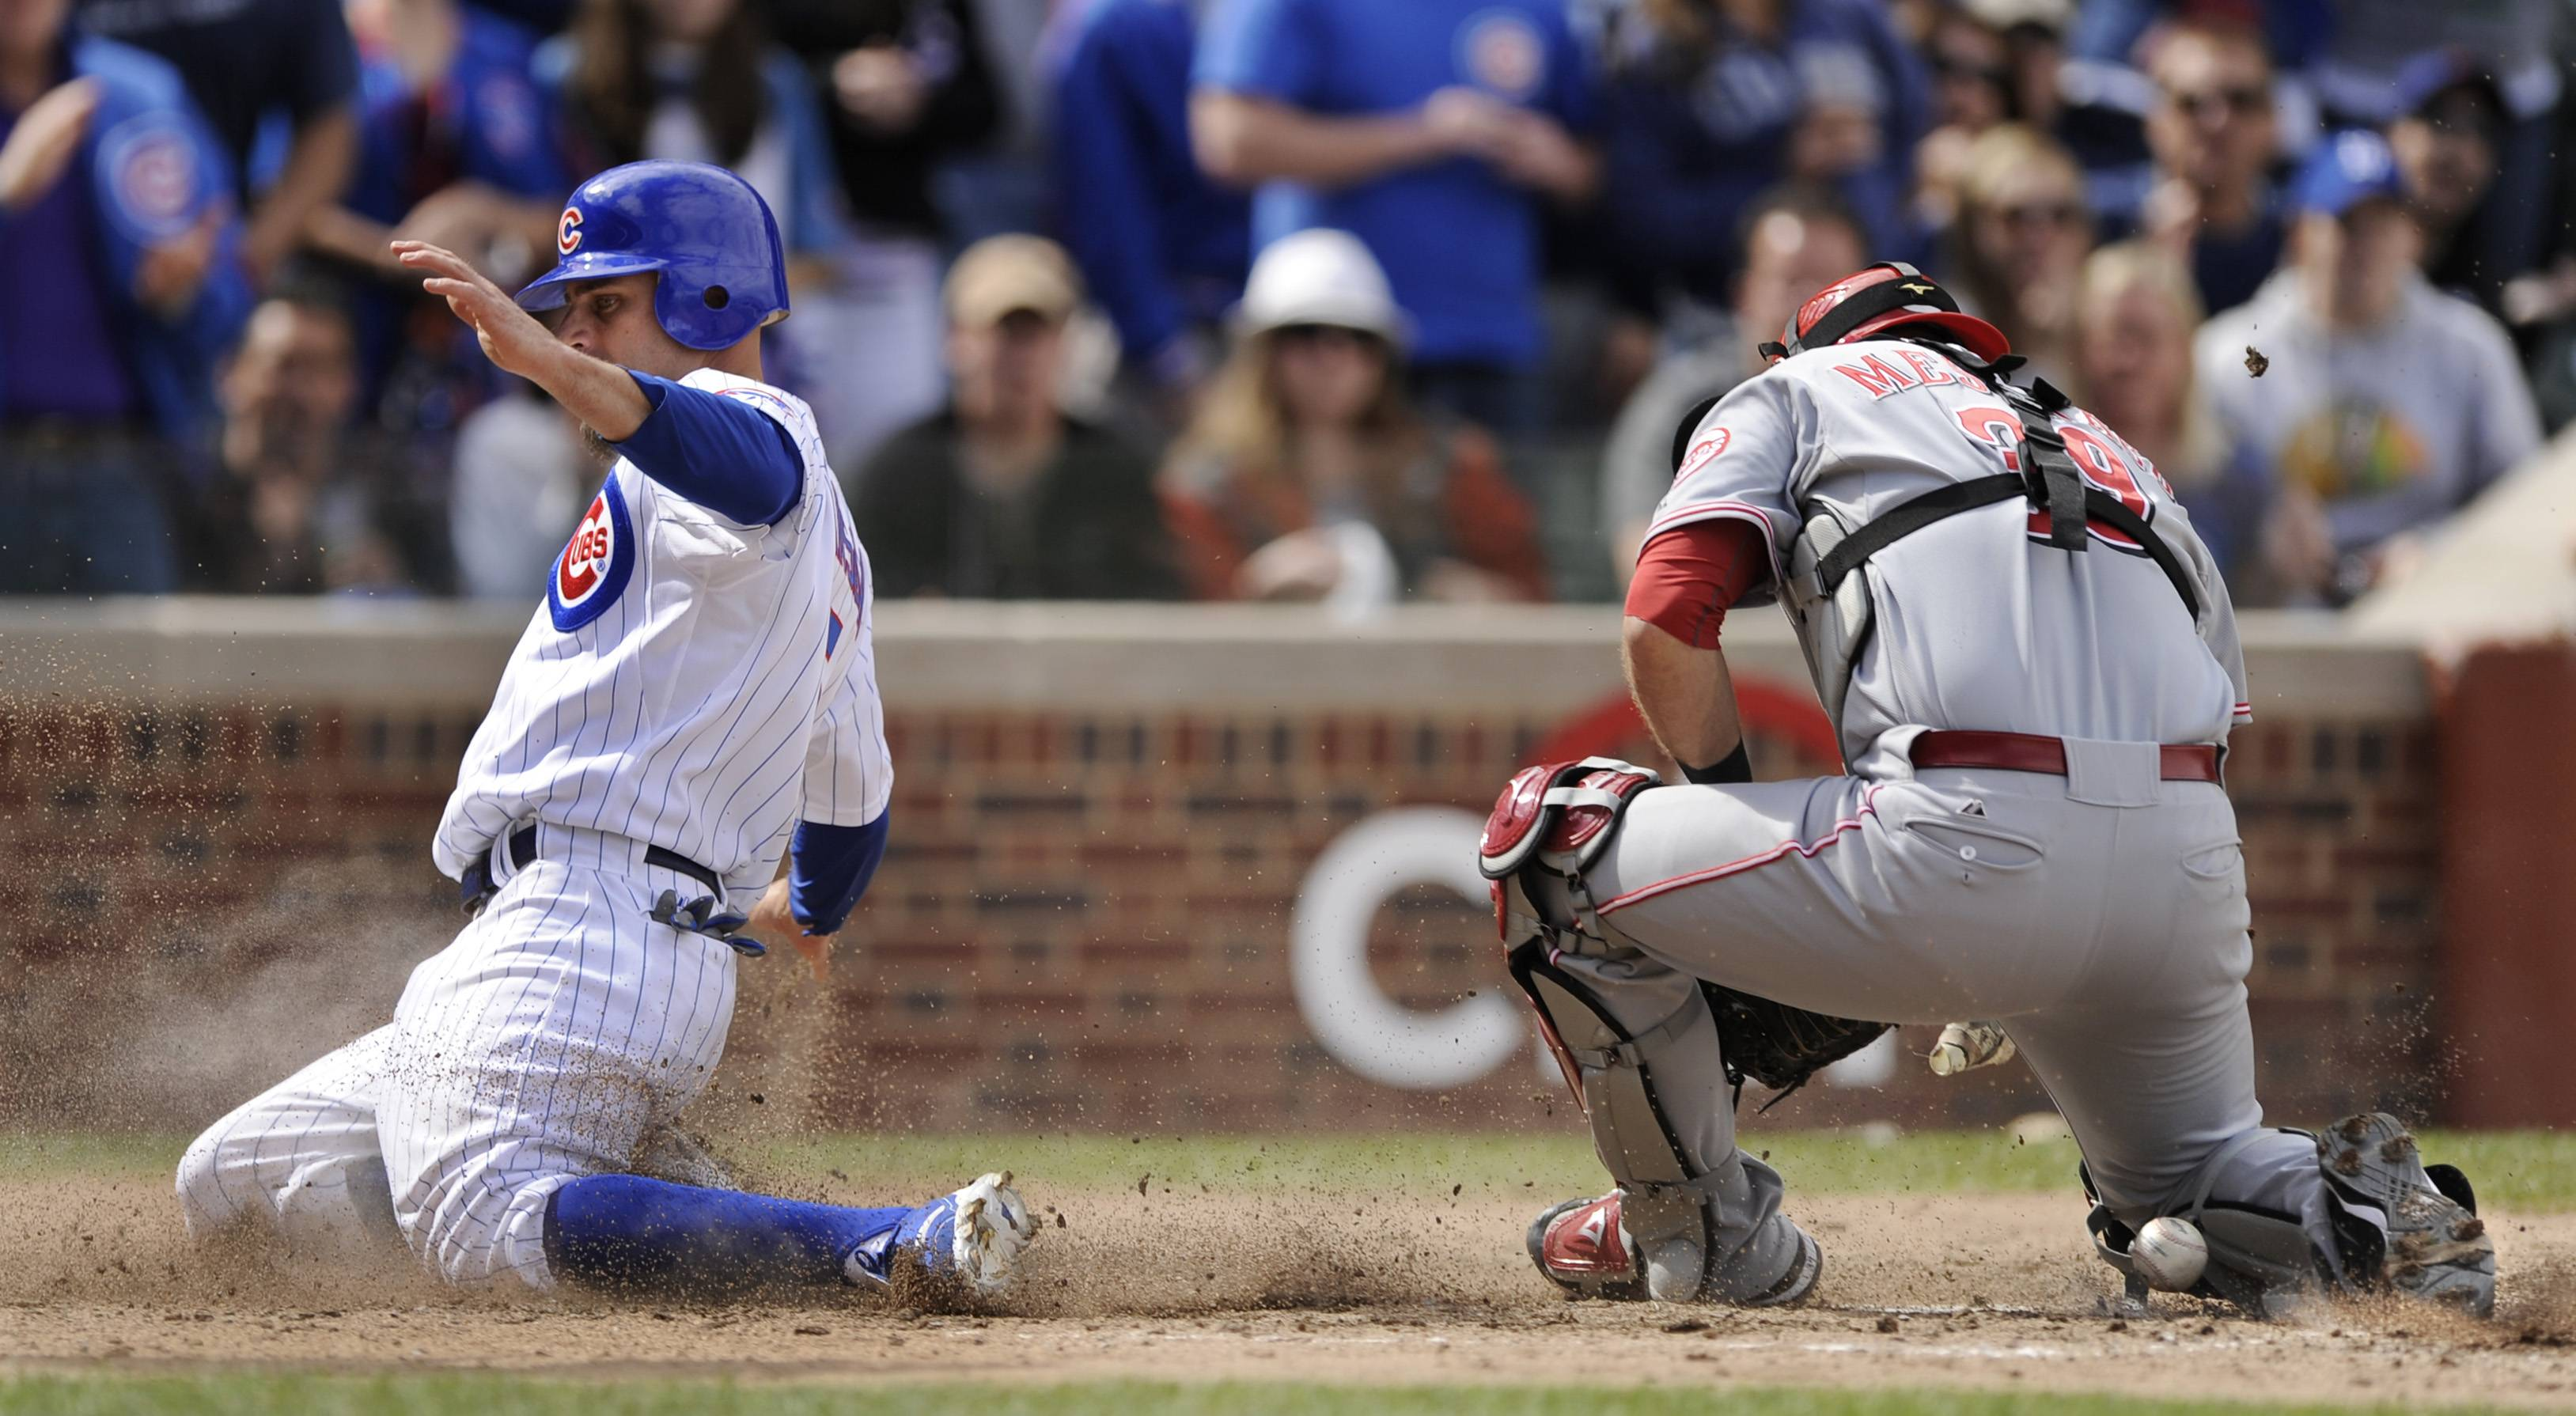 Chicago Cubs' Reed Johnson, left, slides into home plate safely as Cincinnati Reds catcher Devin Mersoraco drops the ball during the fifth inning Monday in Chicago.